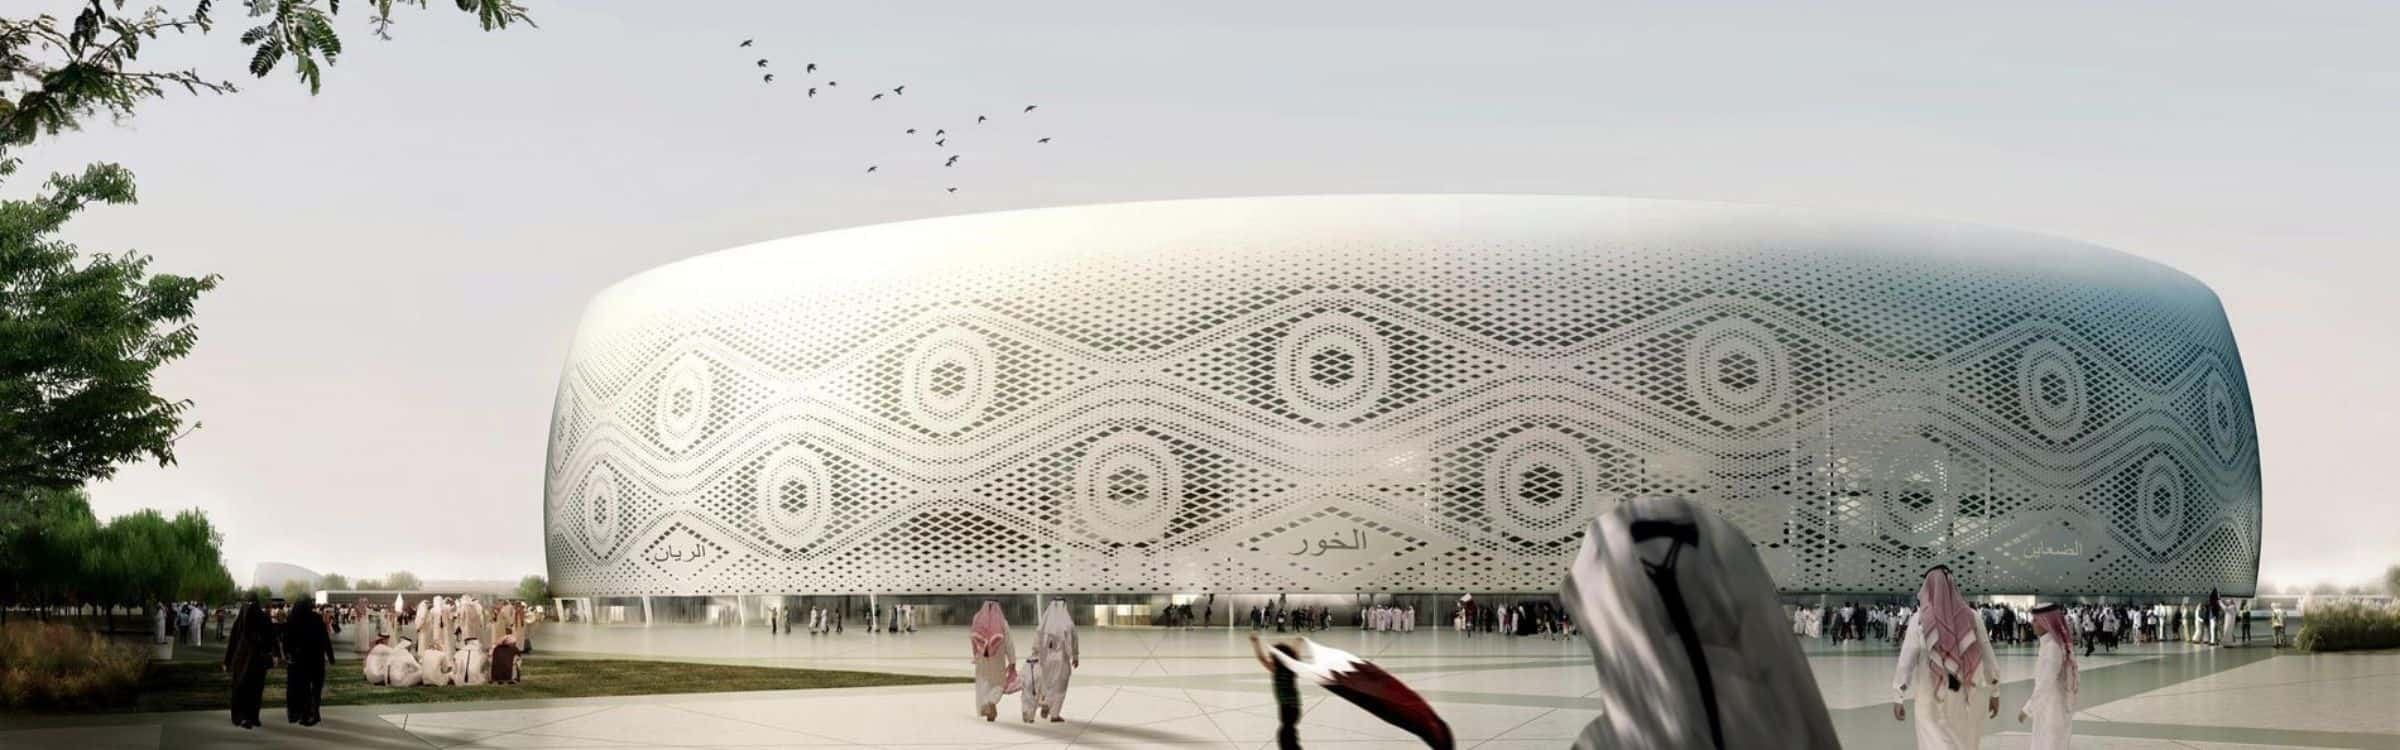 Al Thumama Stadium - Surespan Case Studies